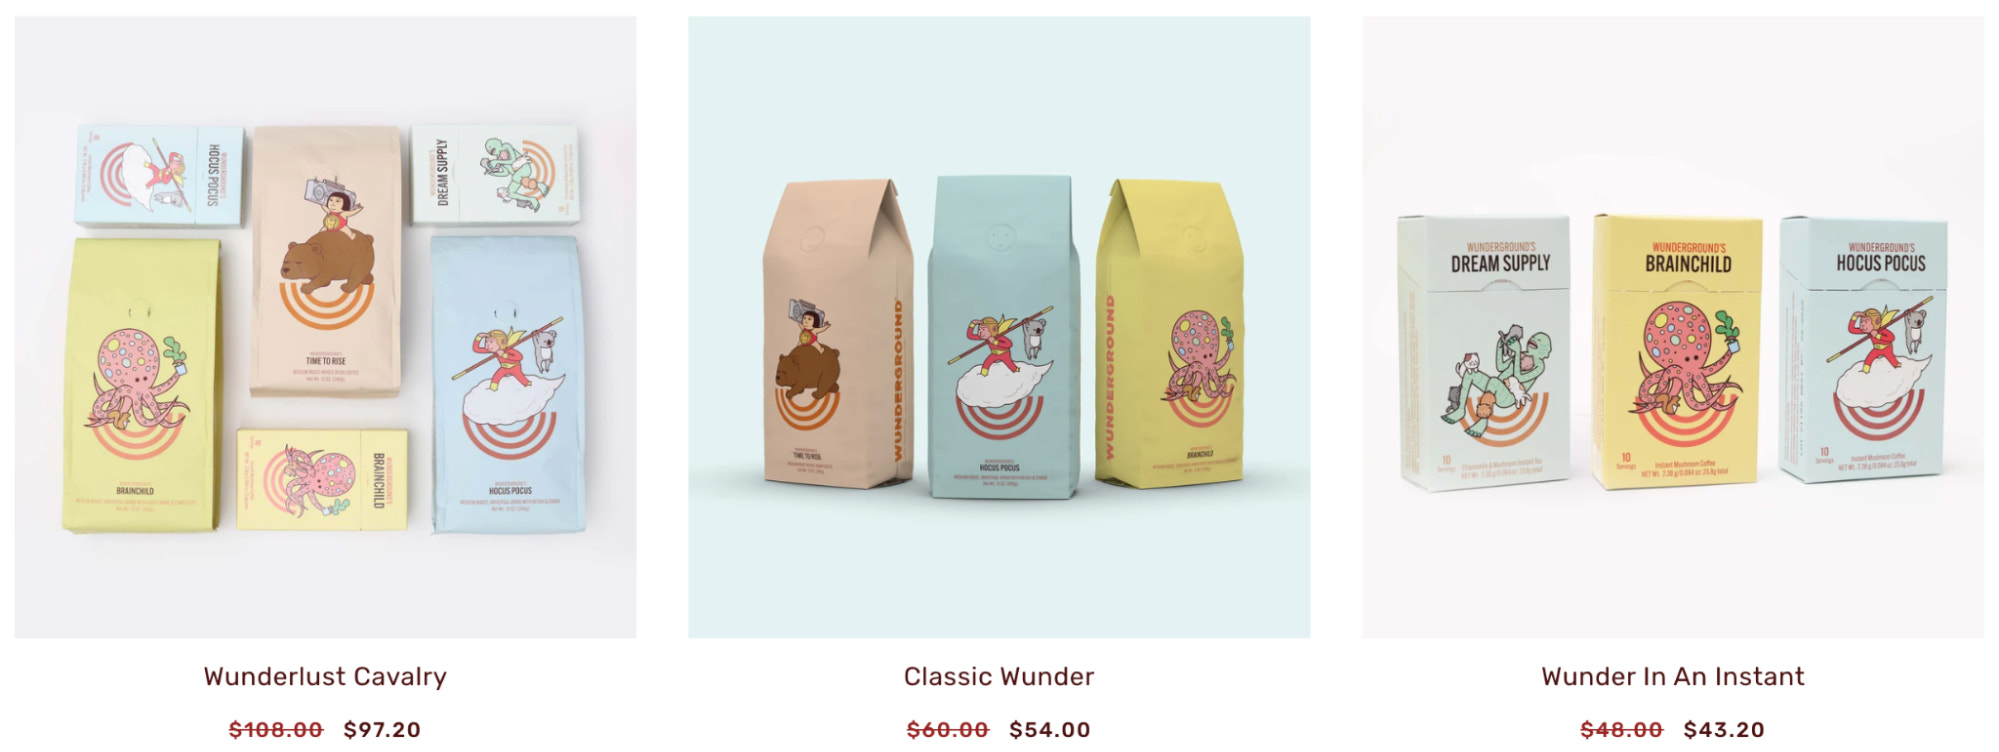 A product page example from Wunderground Coffee's website.